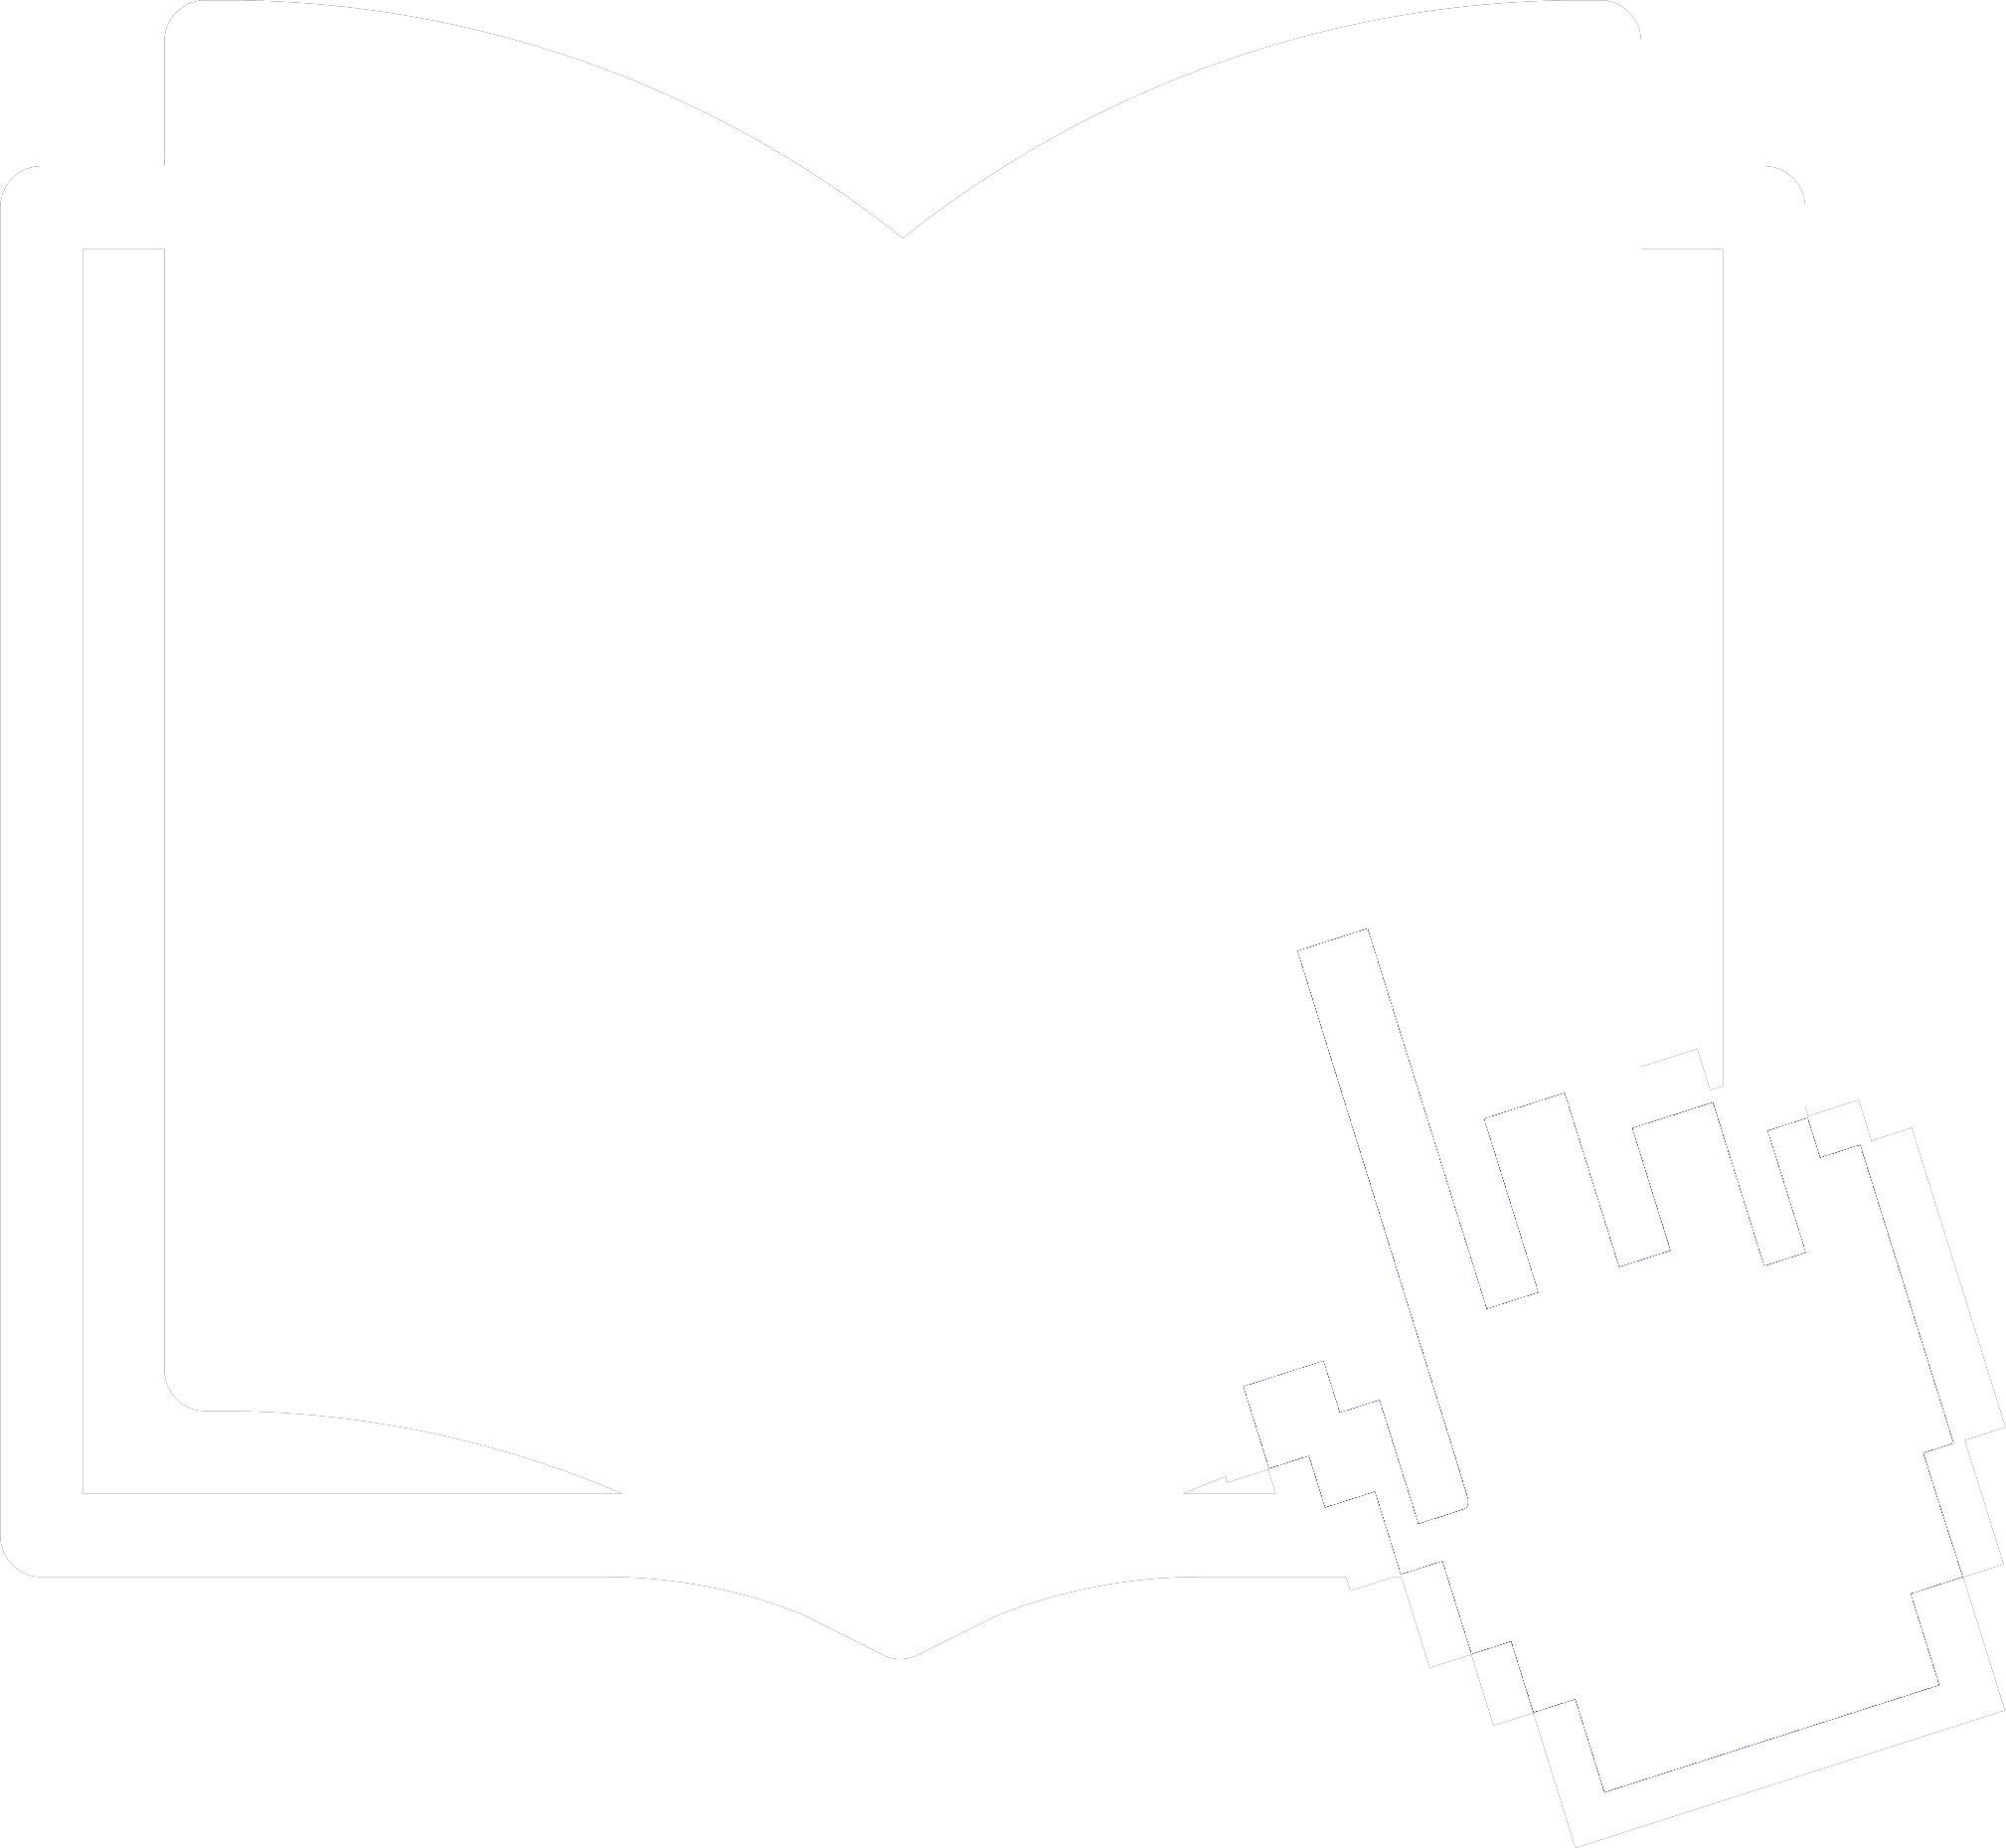 Icon representing a hand pointing to a place in a book